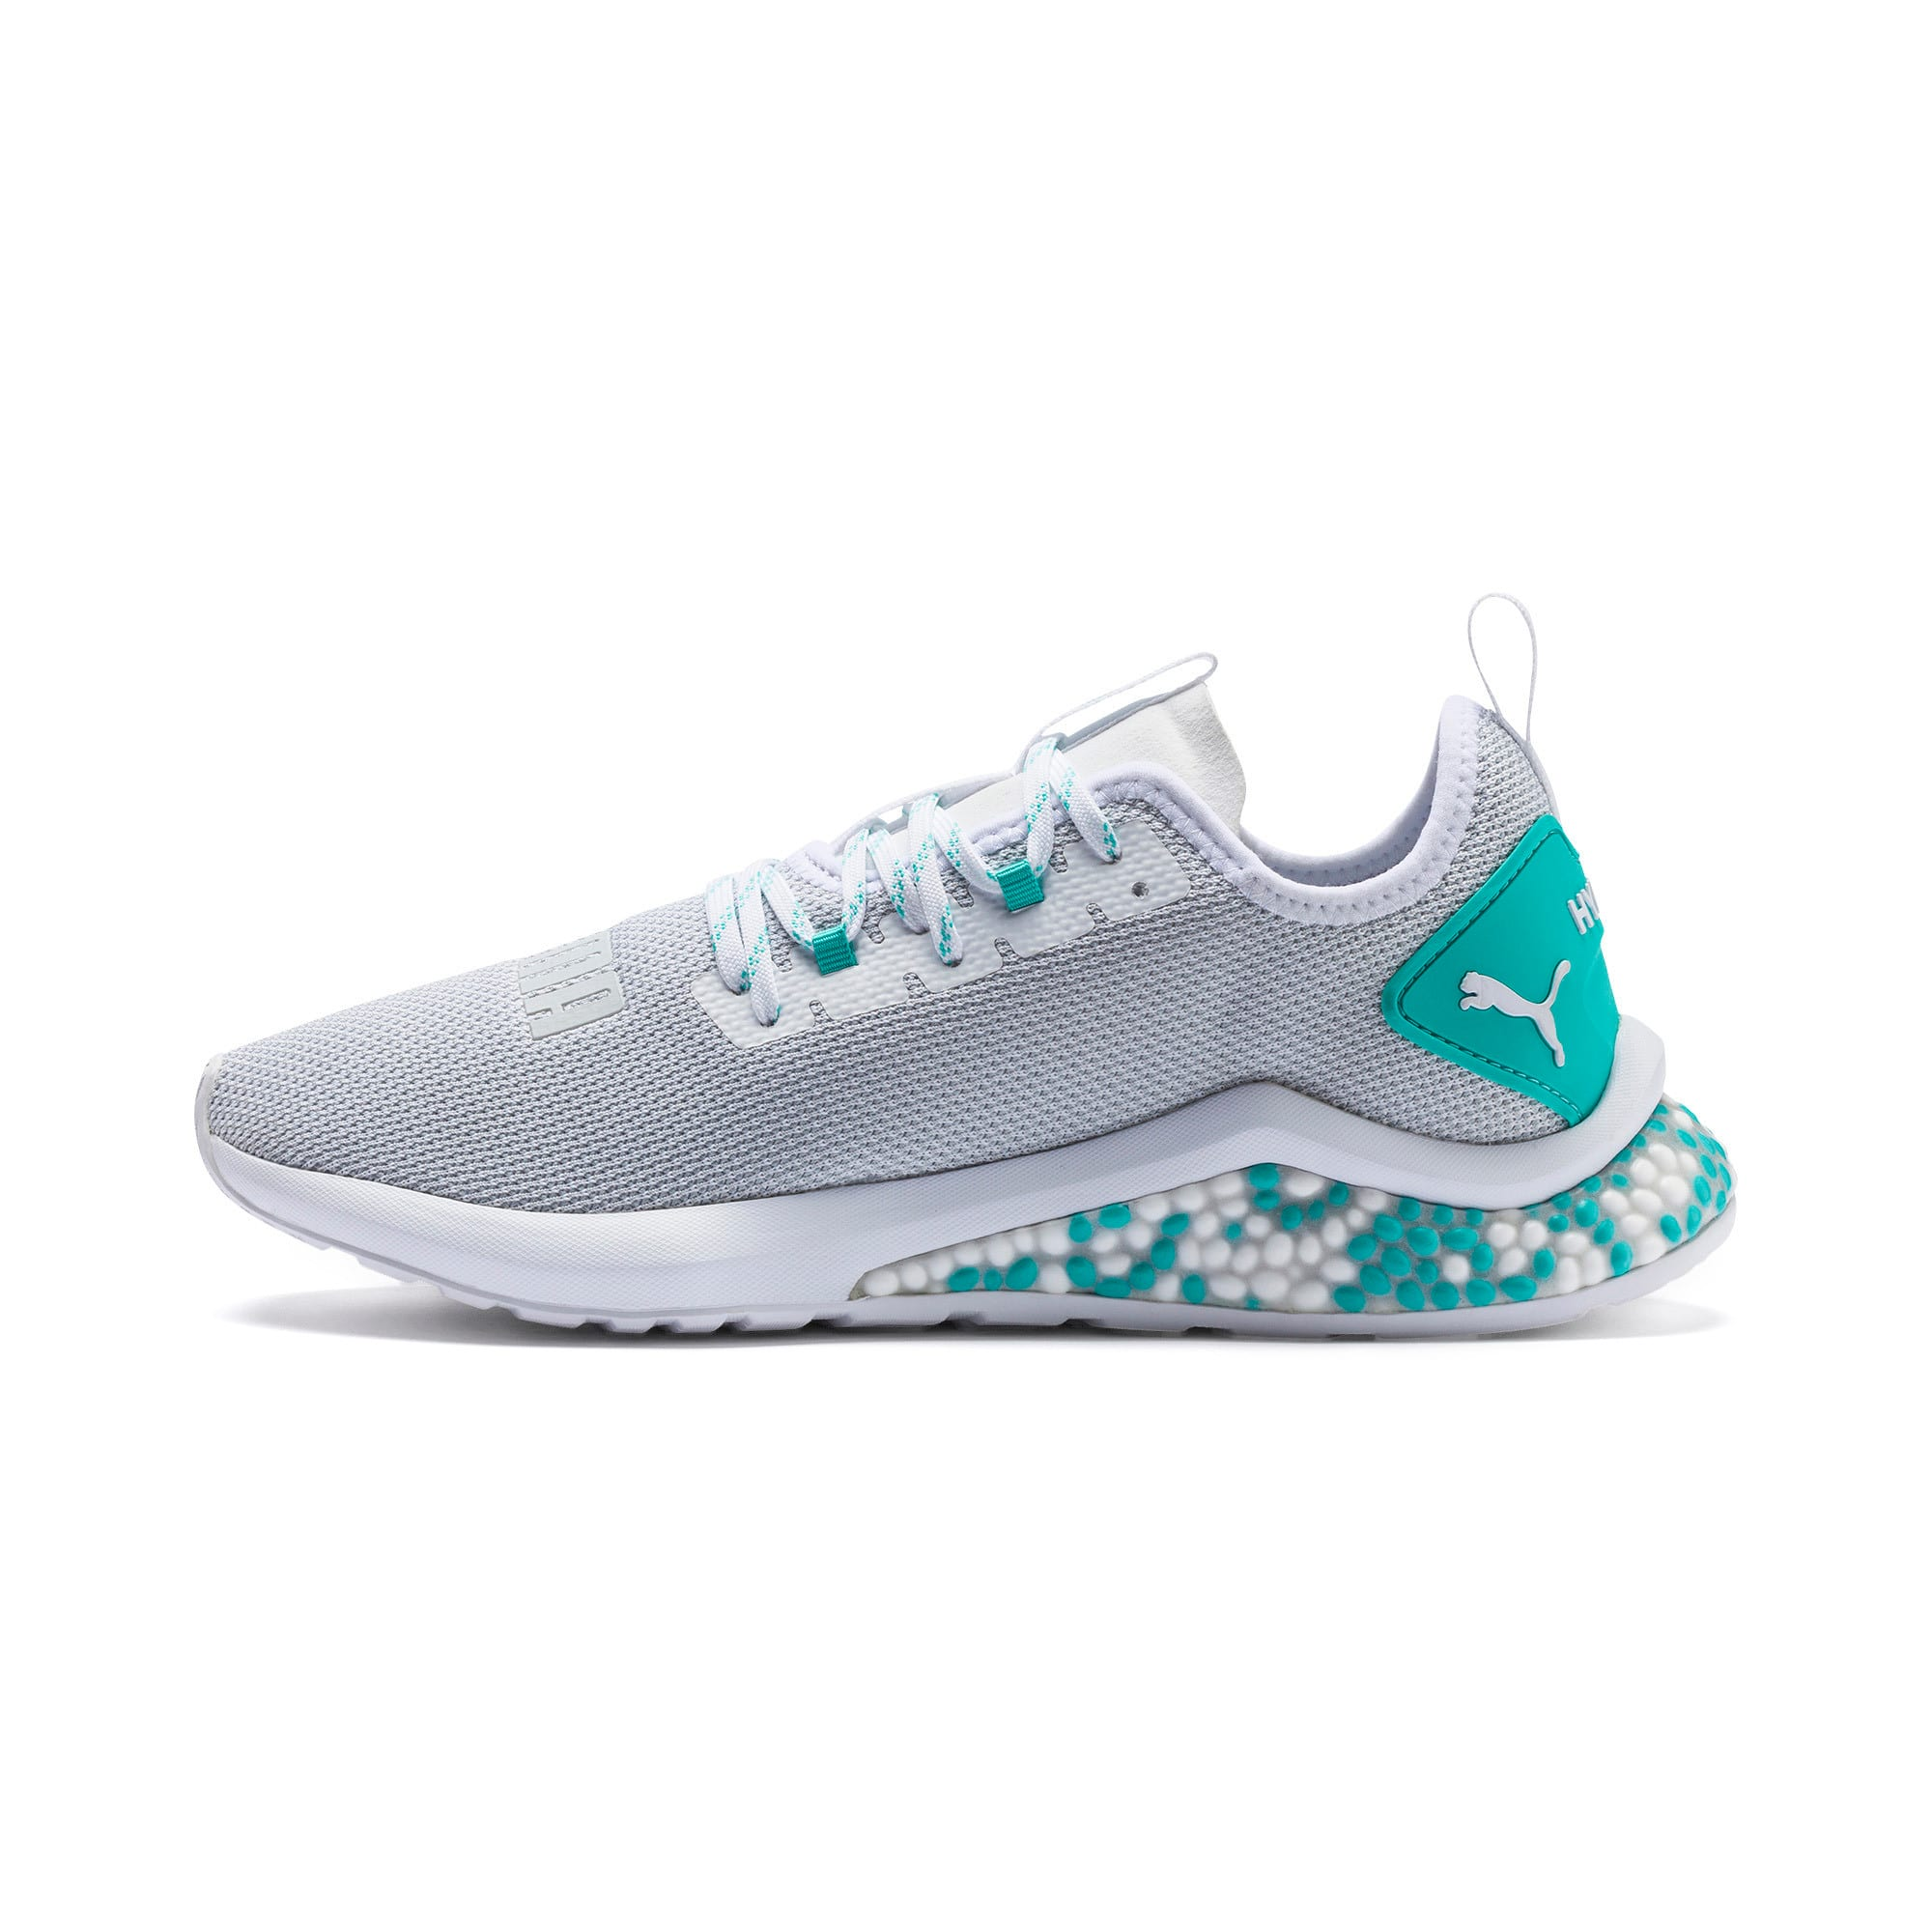 HYBRID NX hardloopschoenen voor heren, Puma White-Blue Turquoise, large